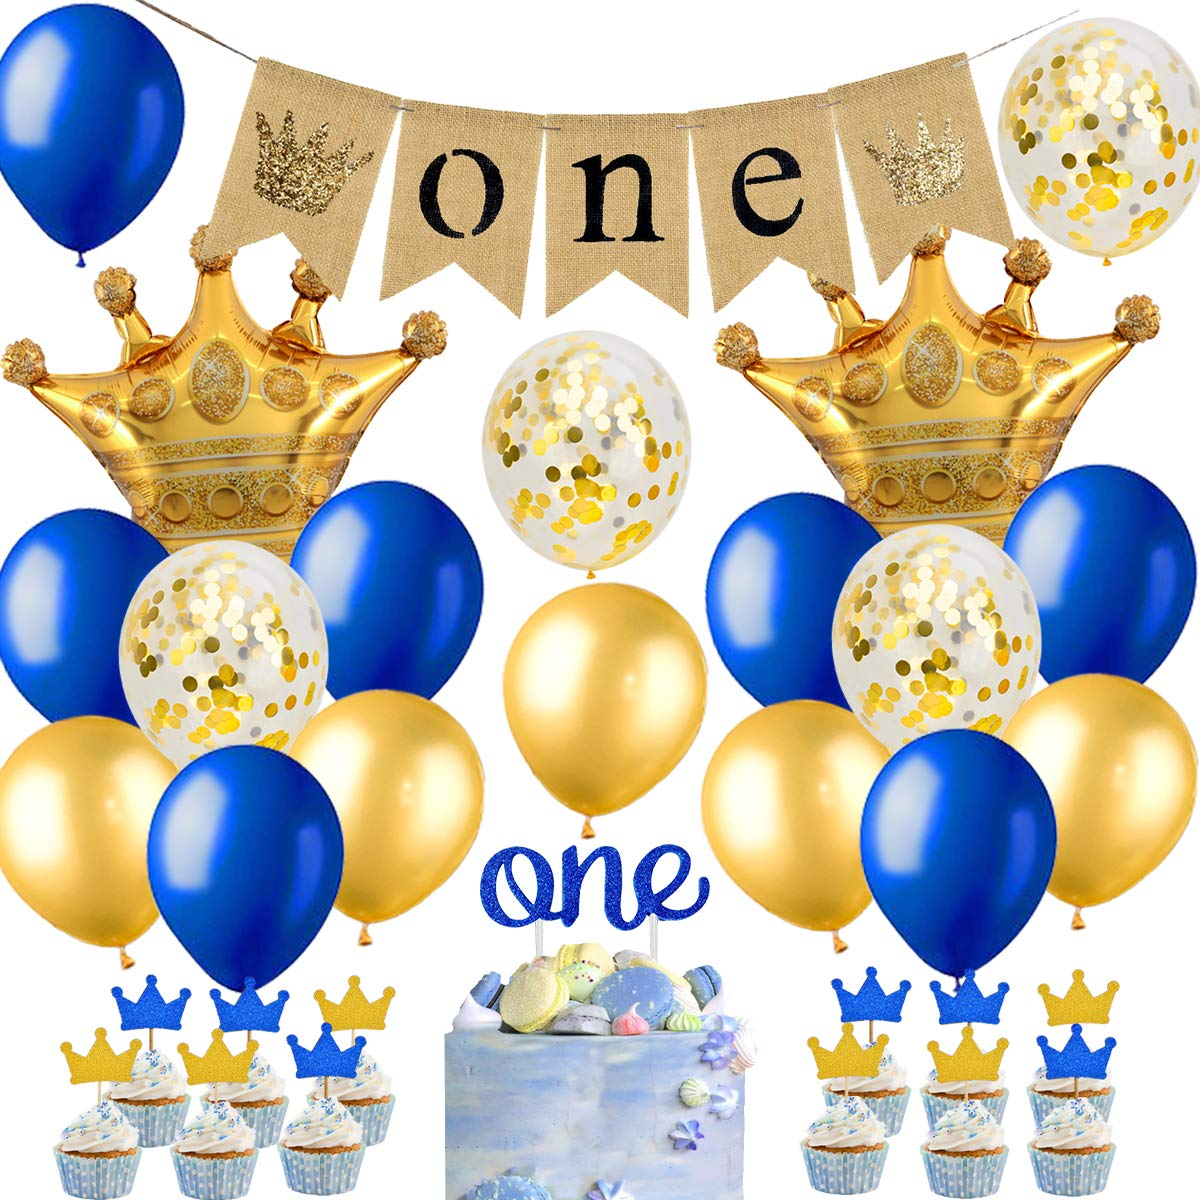 Royal Blue And Yellow Birthday Party Decorations from images-na.ssl-images-amazon.com